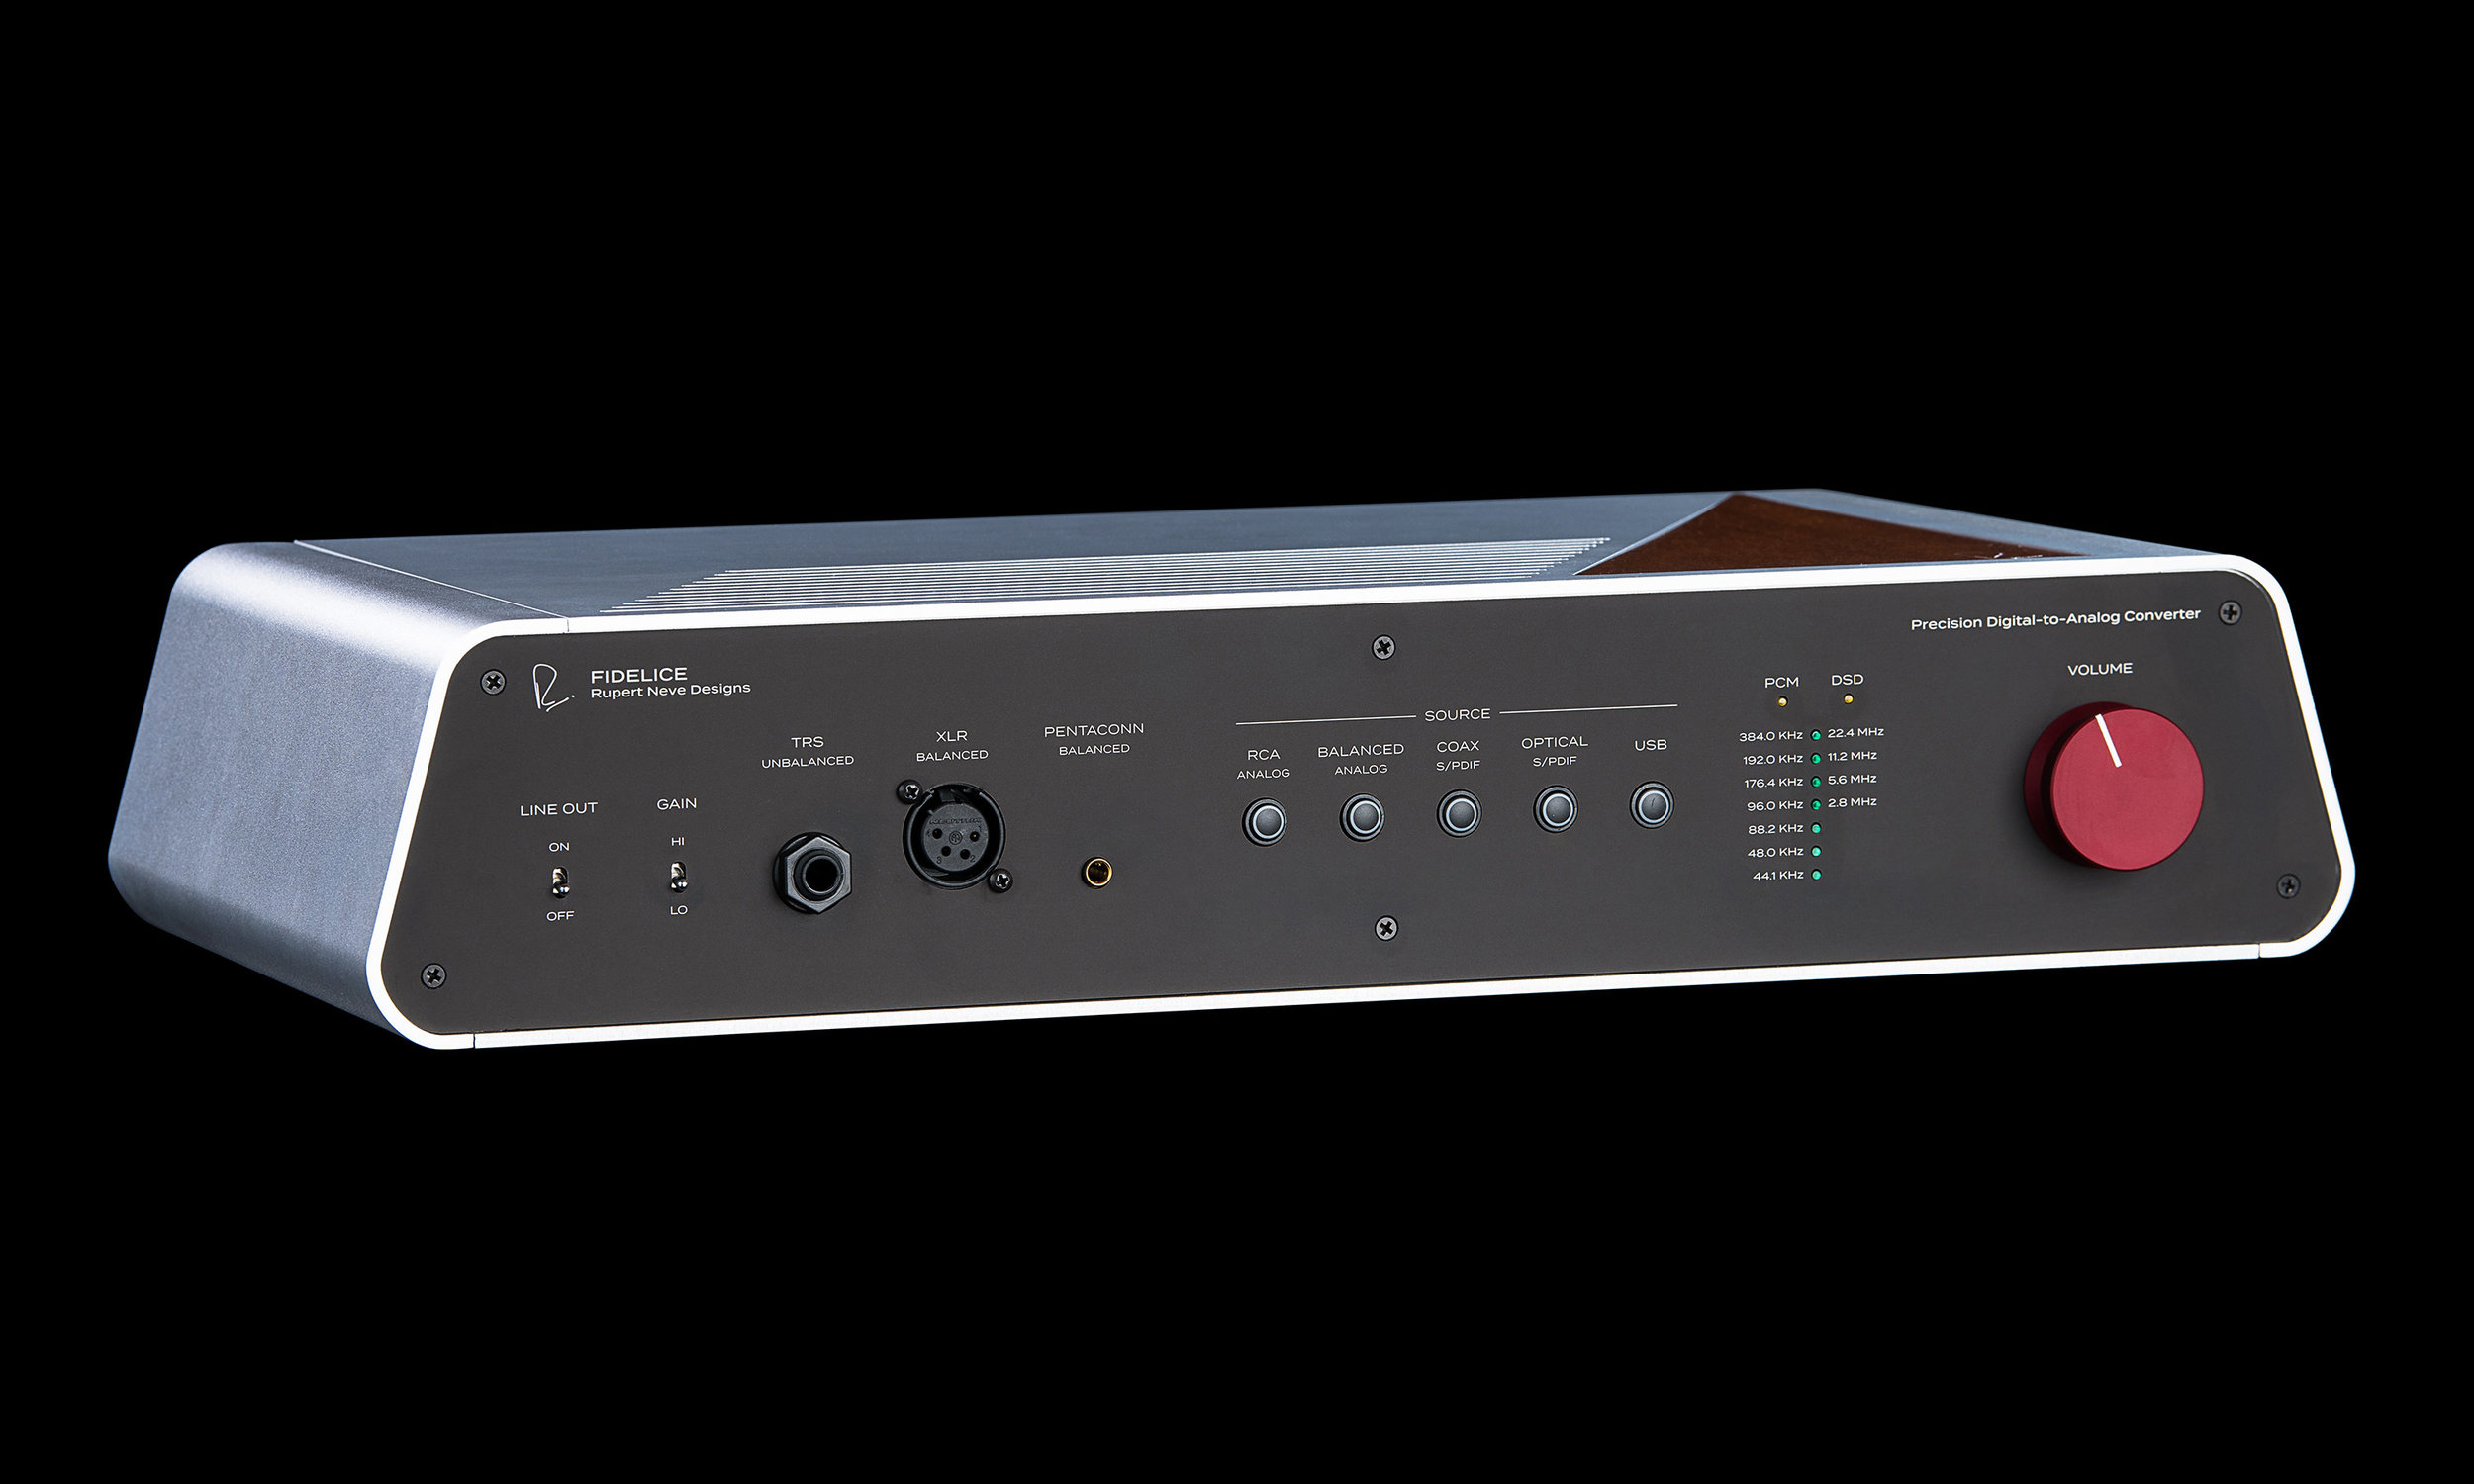 Fidelice by Rupert Neve Designs - Precision Digital-to-Analo